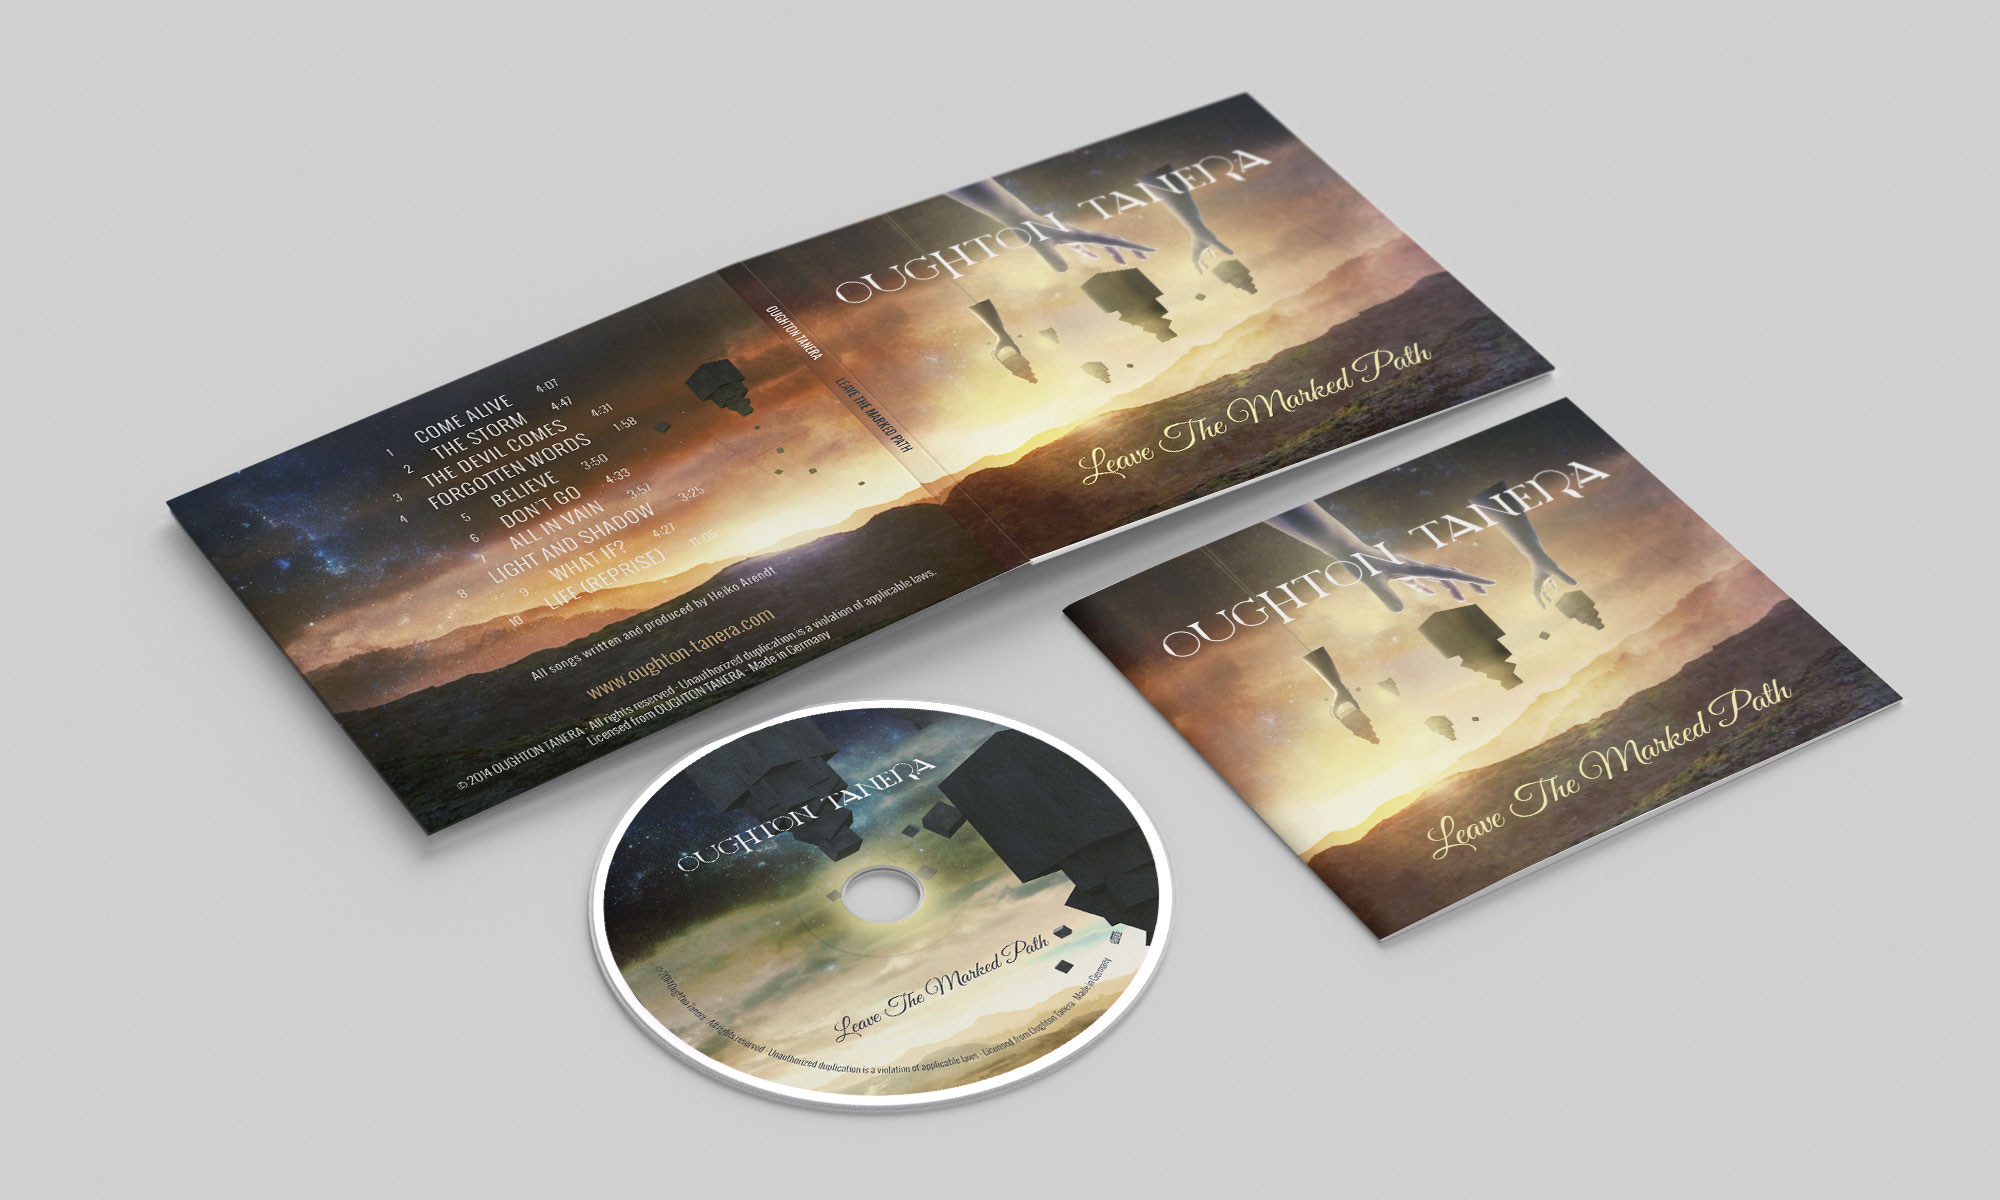 Oughton Tanera - CD Digipak & Booklet